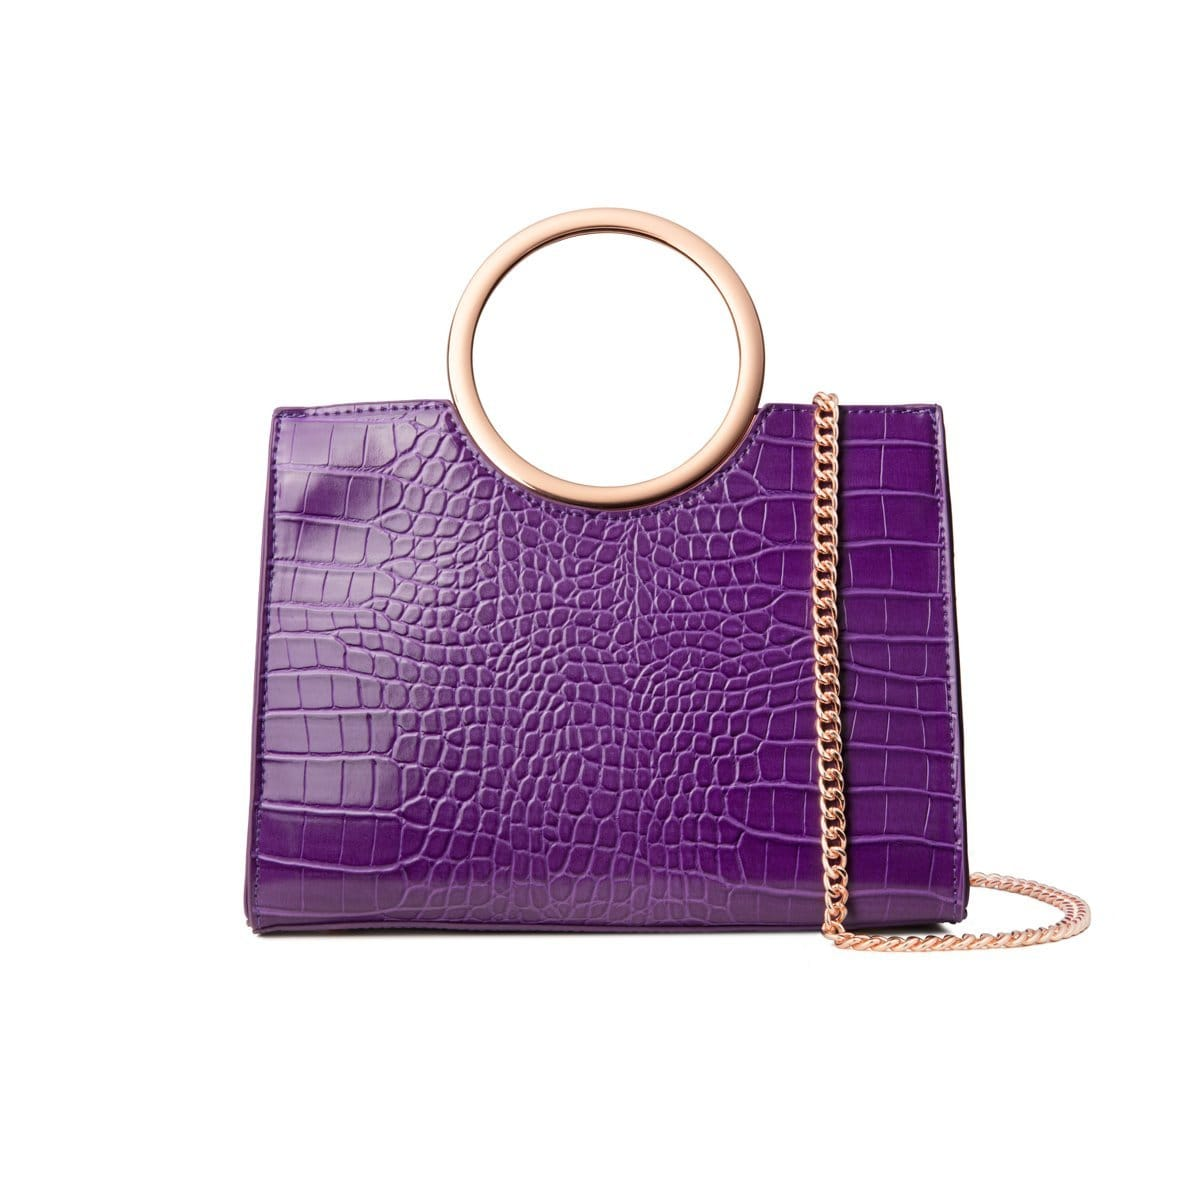 Ultraviolet Arora Handbag Rose Gold